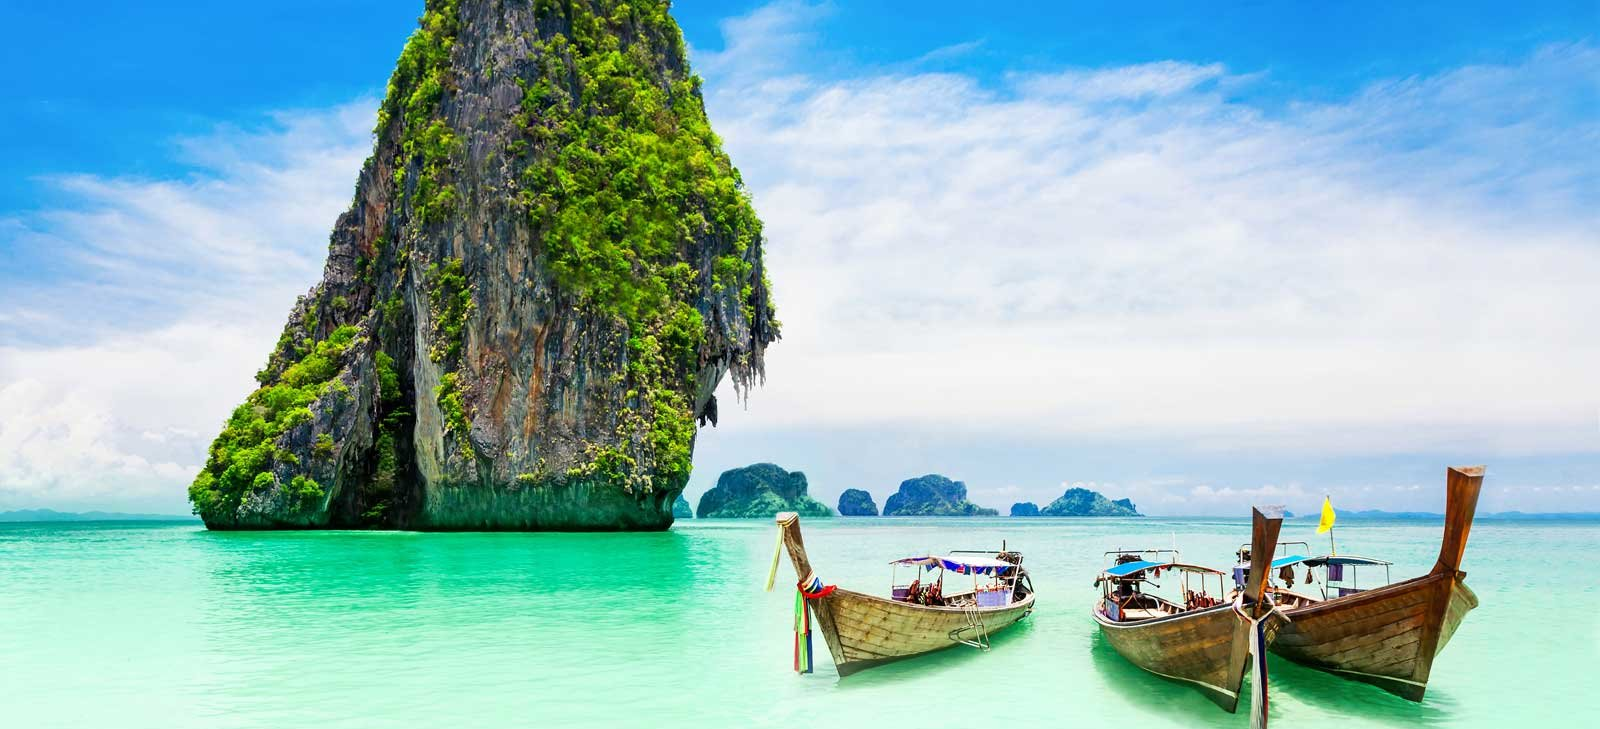 Book Best Combined Vacation Packages to Thailand Vietnam & Cambodia